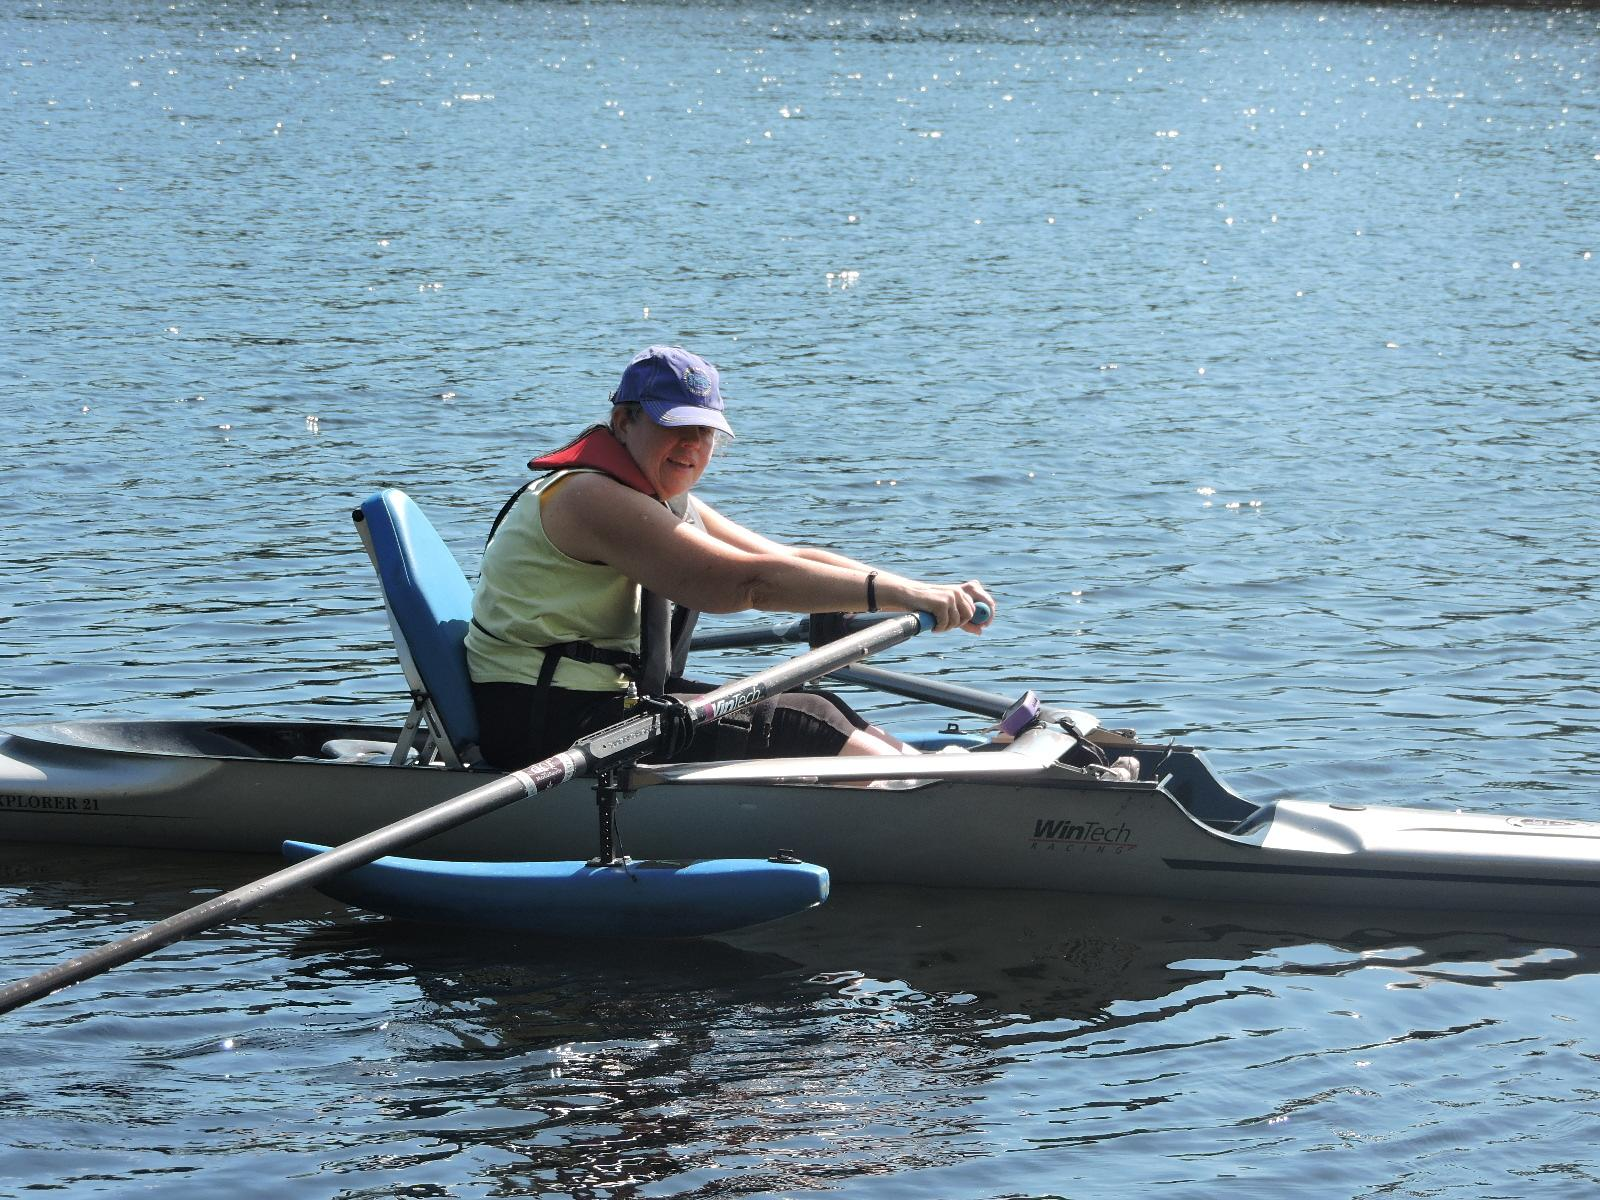 A photo of a woman rowing. She is using a shell with pontoons and an upright, padded seat.